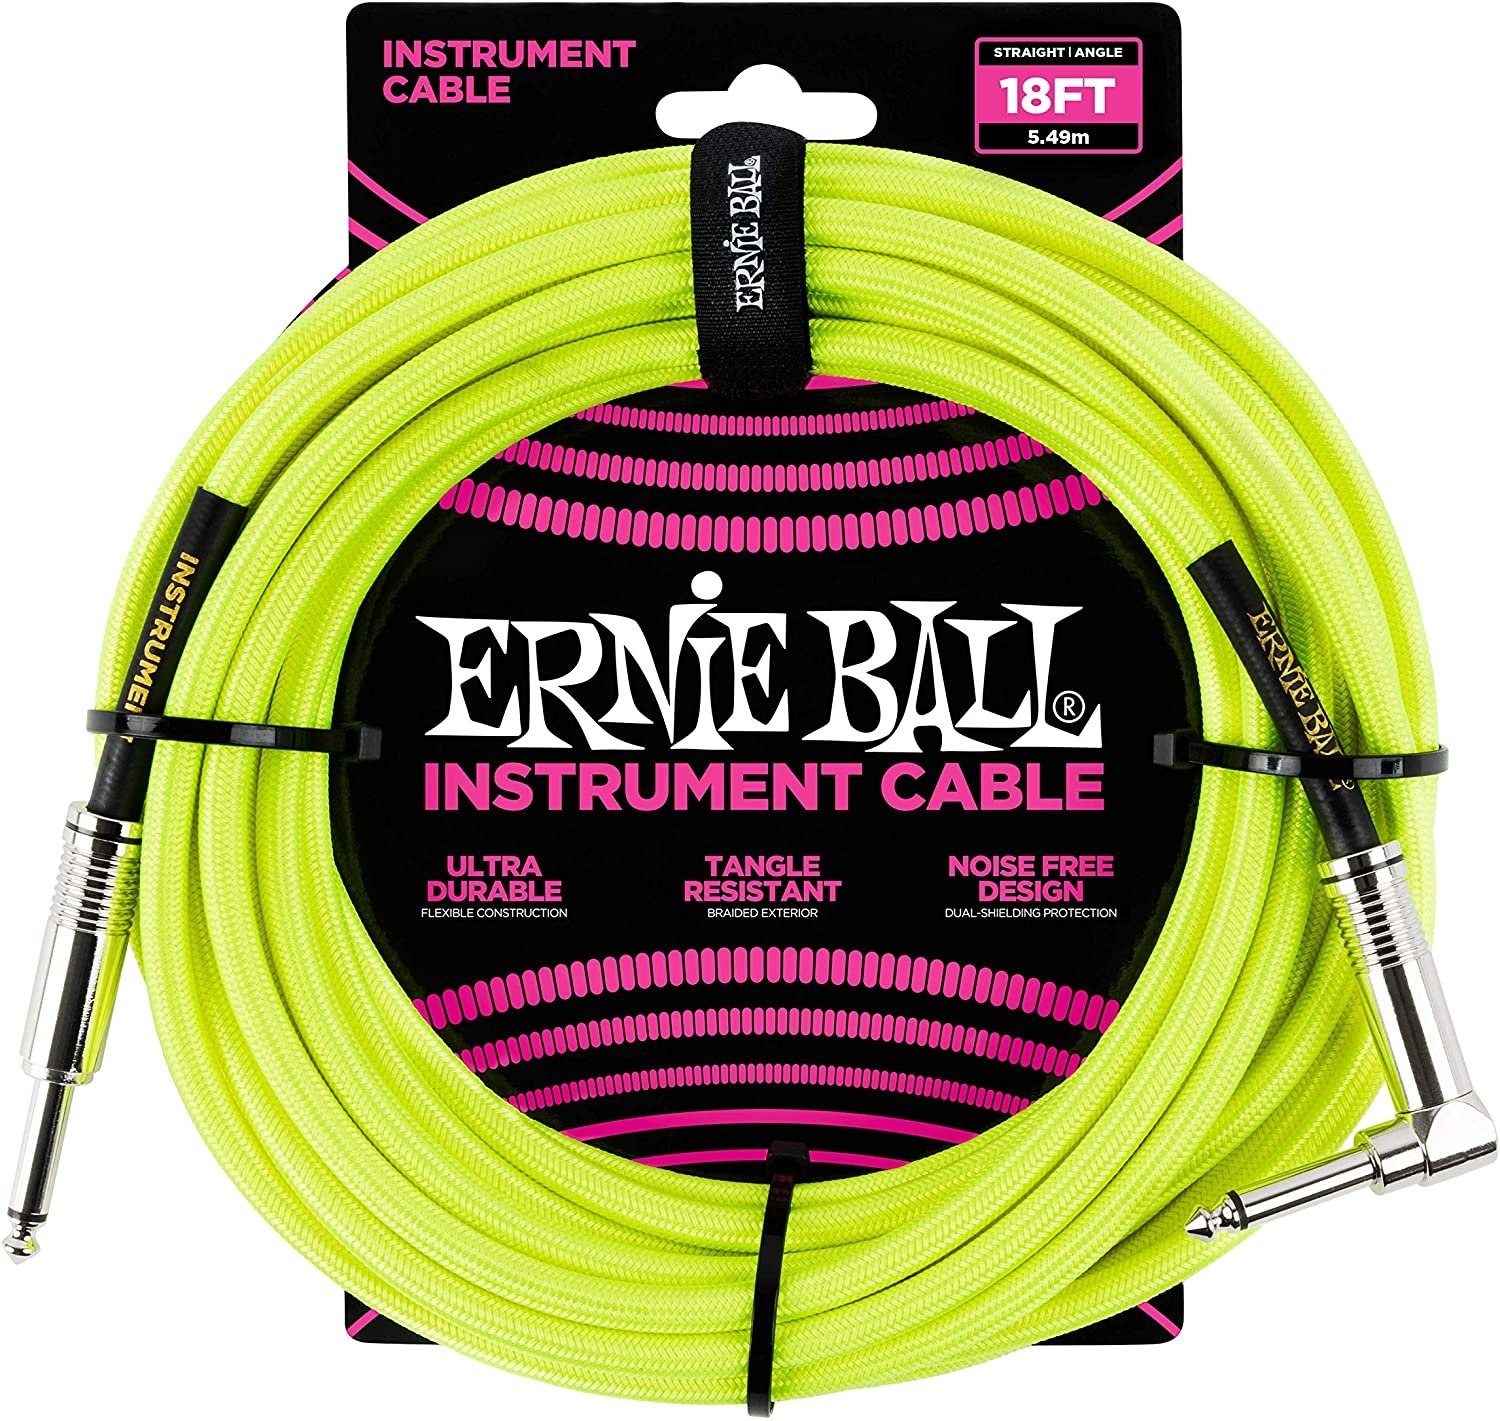 Ernie Ball Instrument Cable, 1/4 Right Angle, Neon Yellow, 18 ft. (P06085)